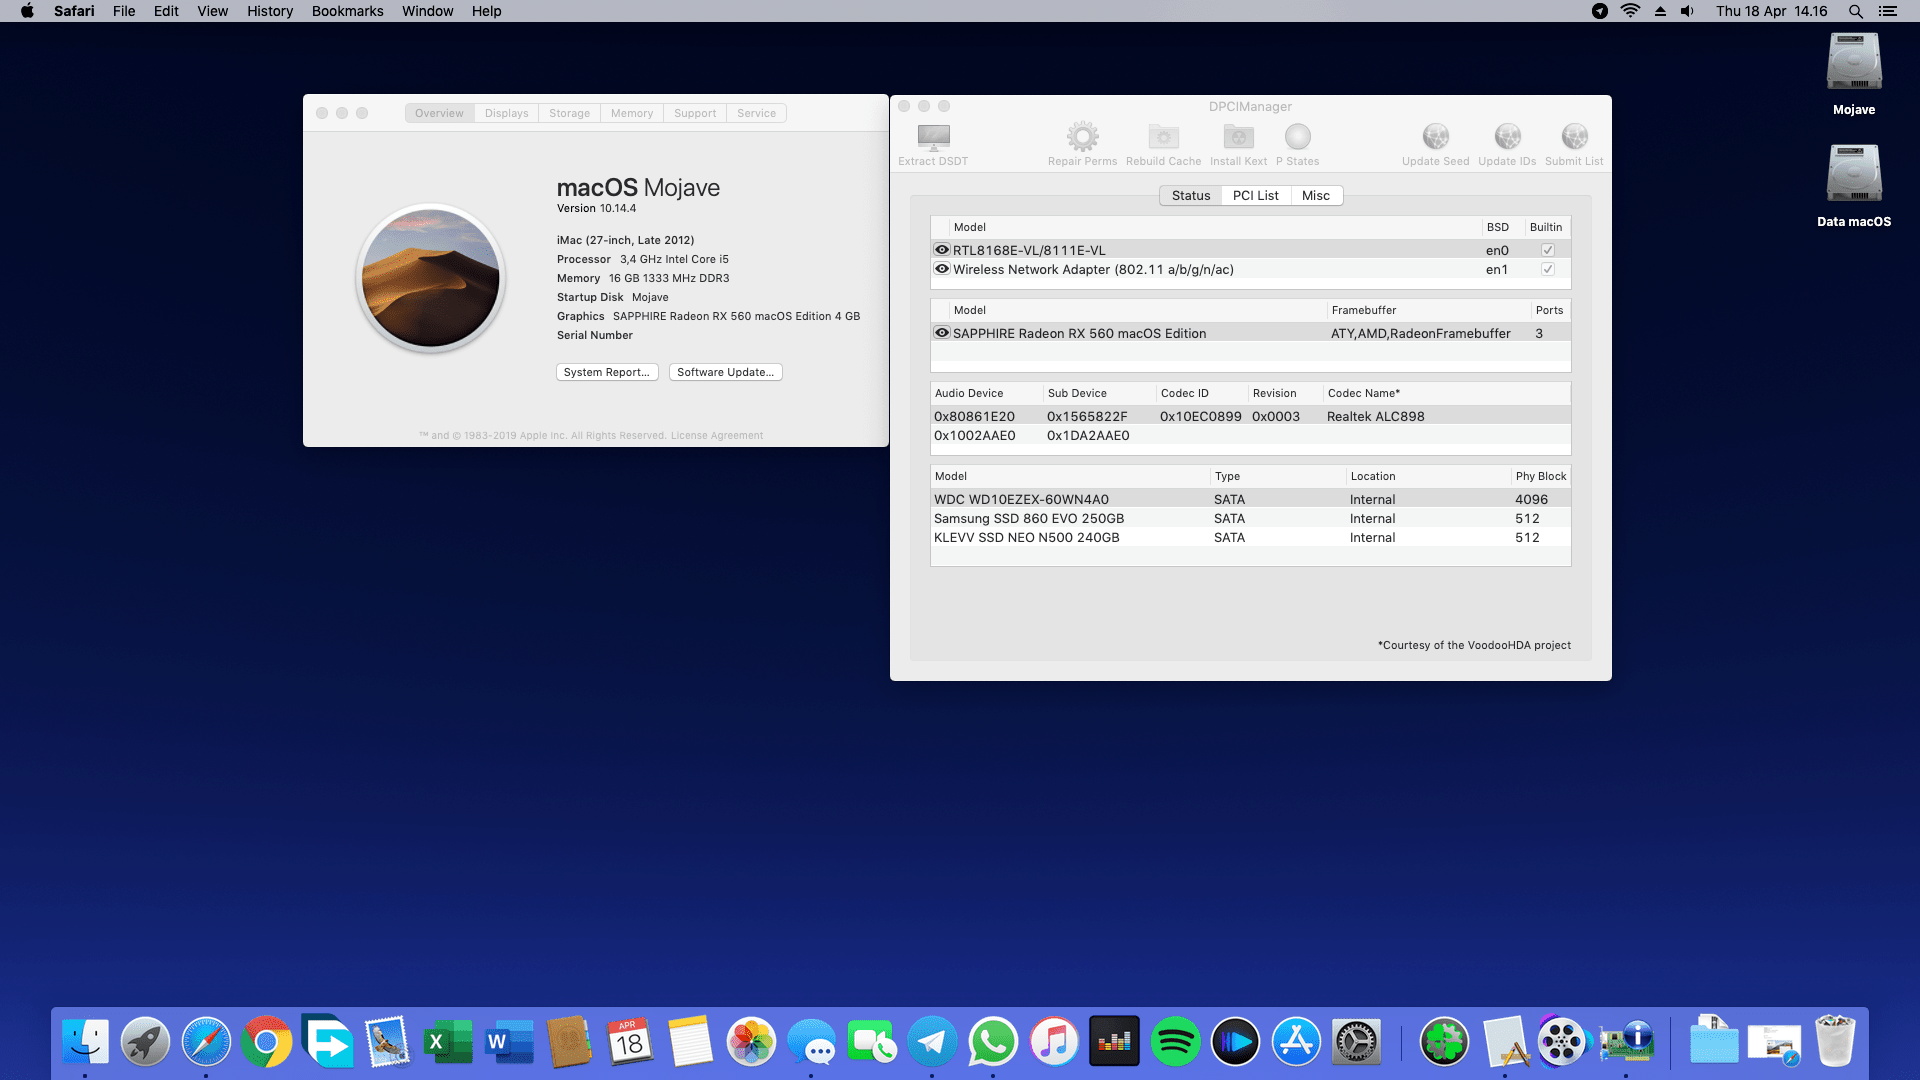 Succes Hackintosh macOS Mojave 10.14.4 Build 18E226 at Biostar Z77X Hifi + Intel Core i5 3570 + Sapphire RX 560